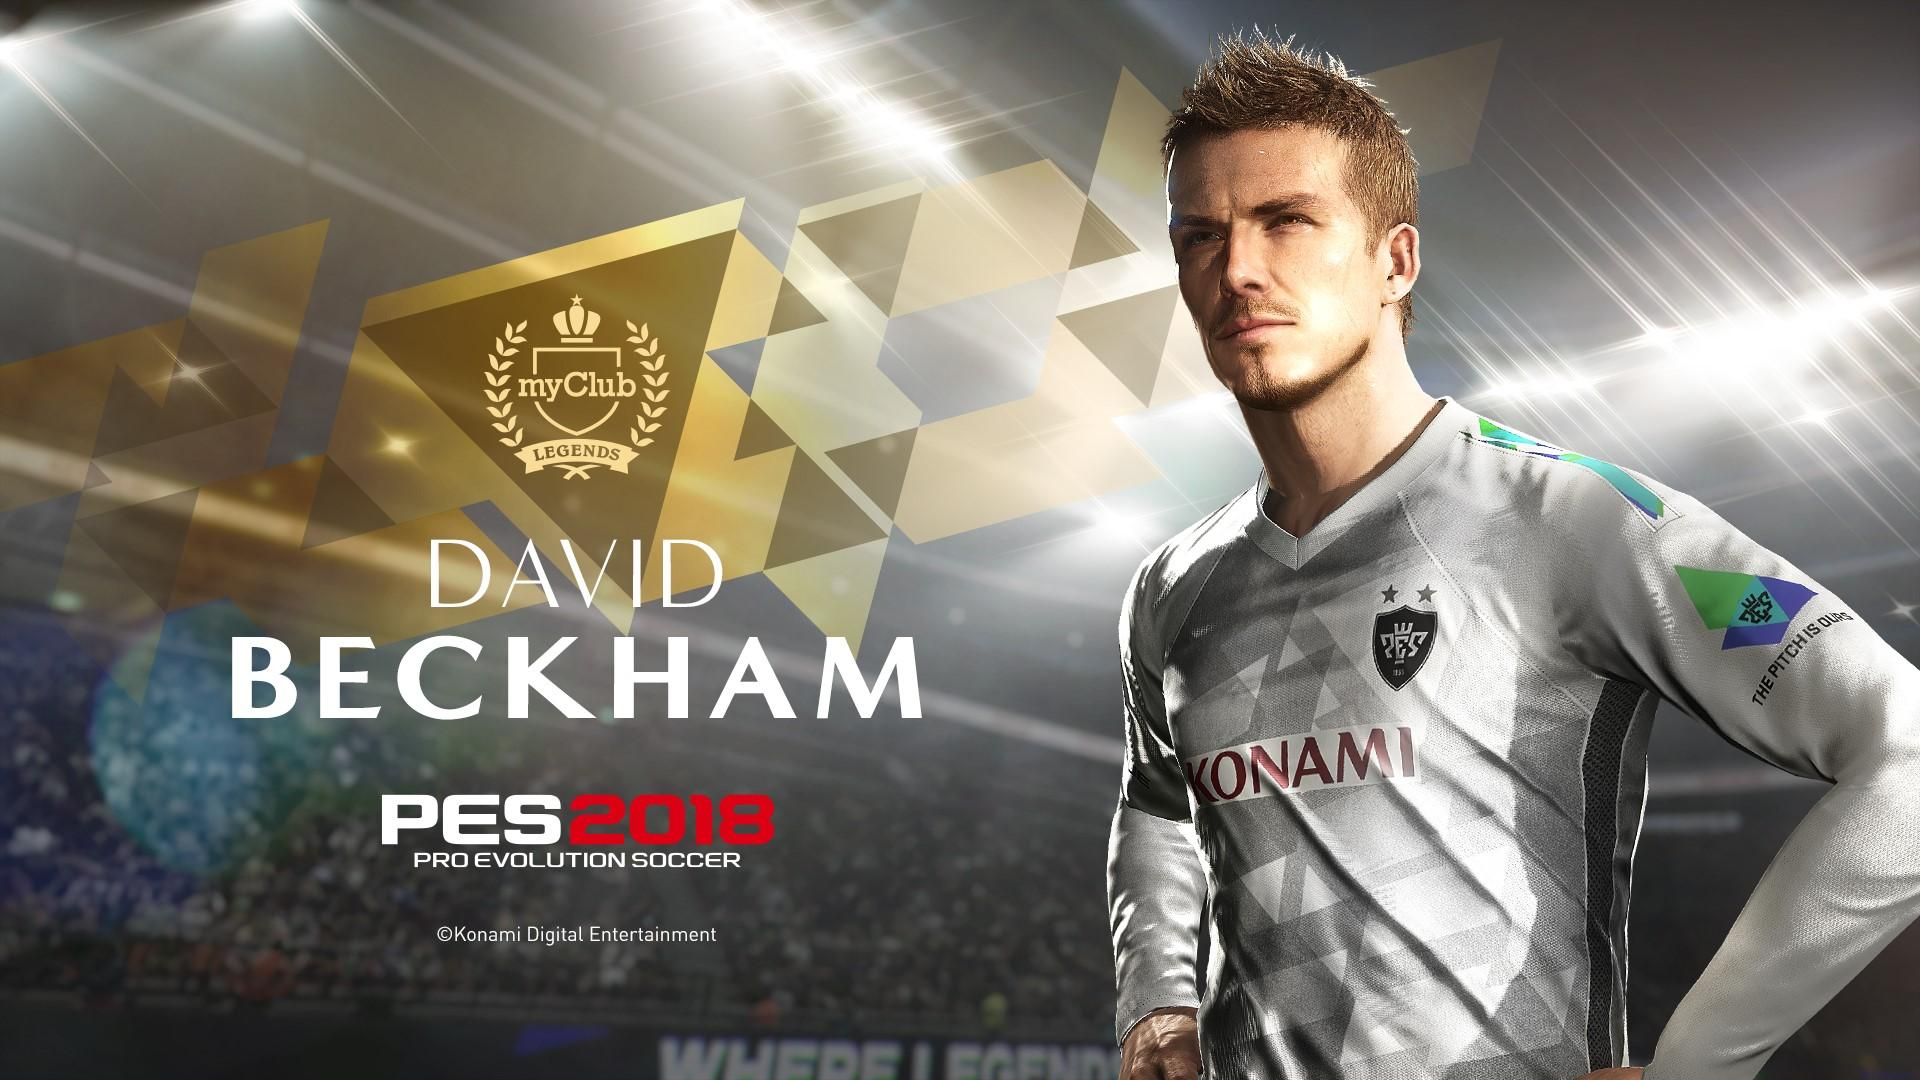 PES 2018 signs up David Beckham as a PES Legend Ambassador